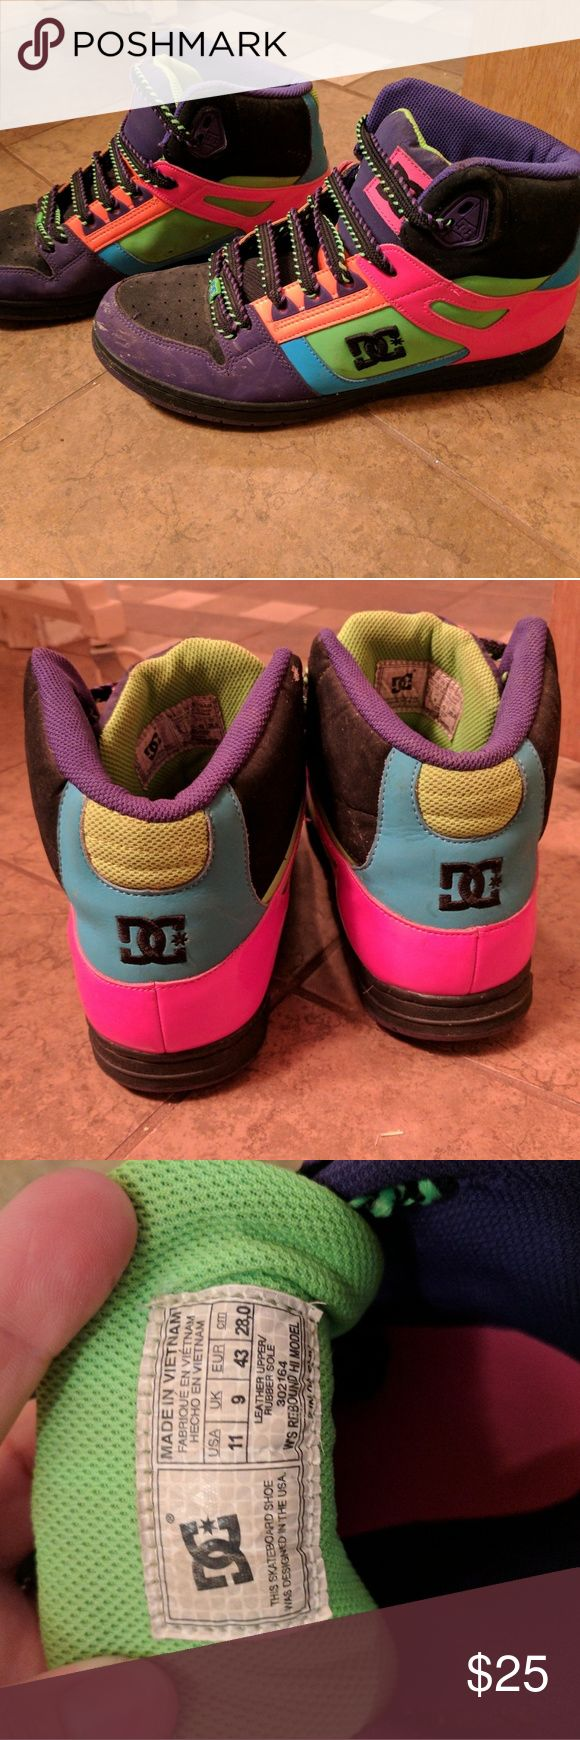 DC shoes Colorful DC shoes. Just need cleaned cause they have been in the closet too long. Size 11 Shoes Sneakers